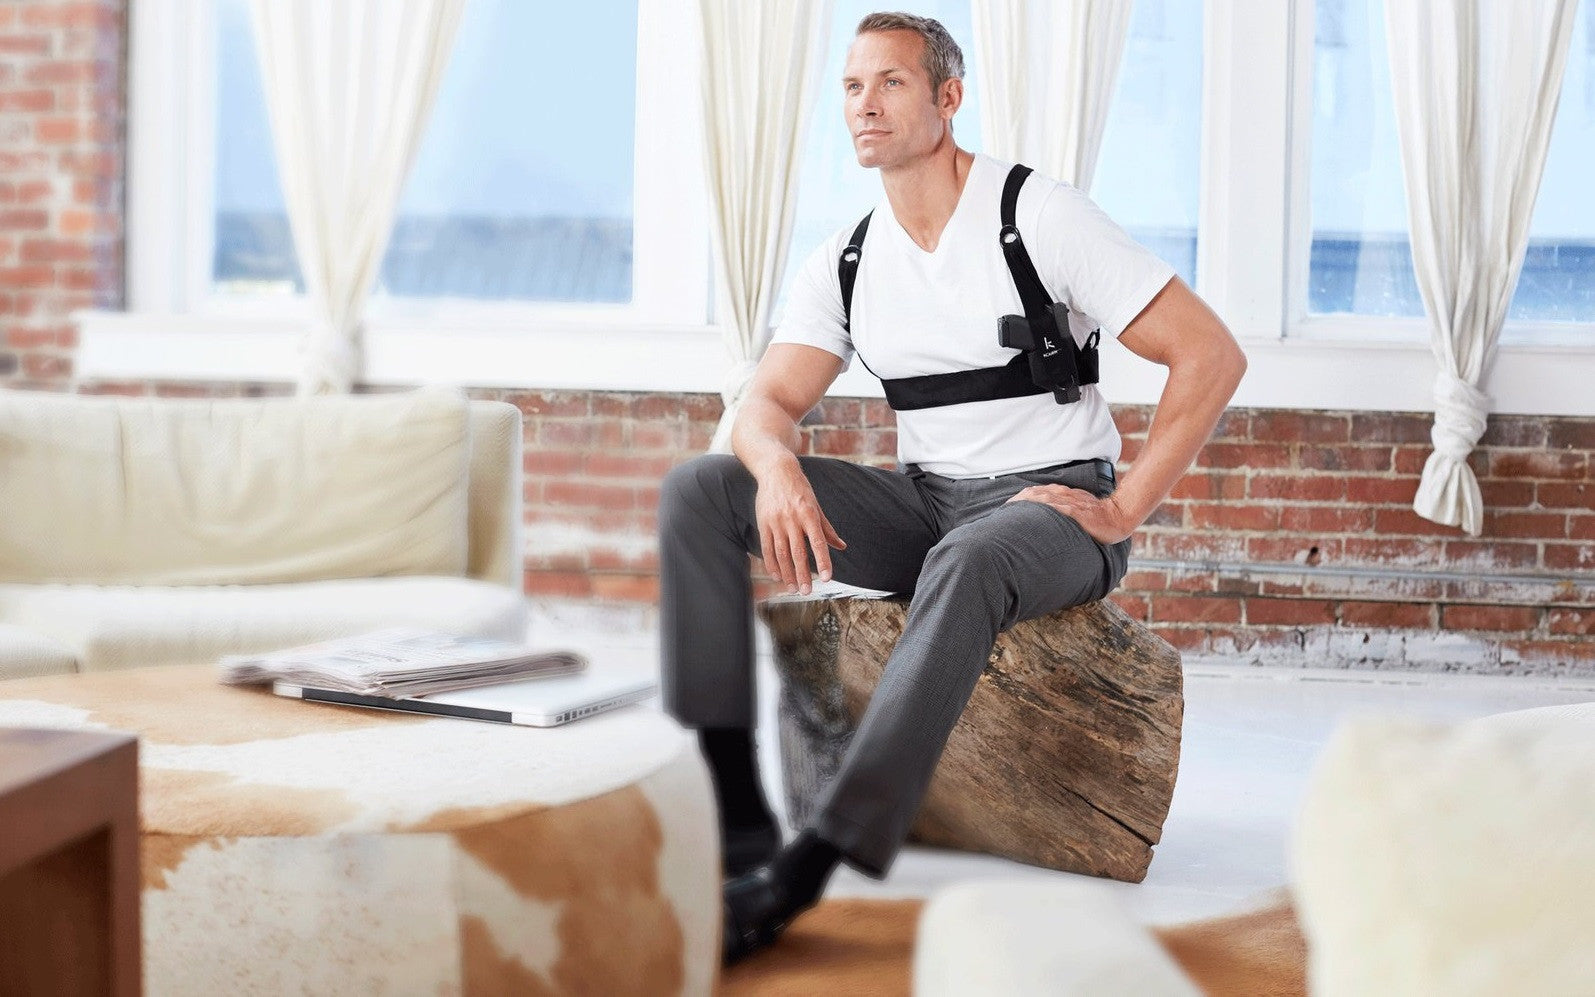 Safe Concealed Carry urban living